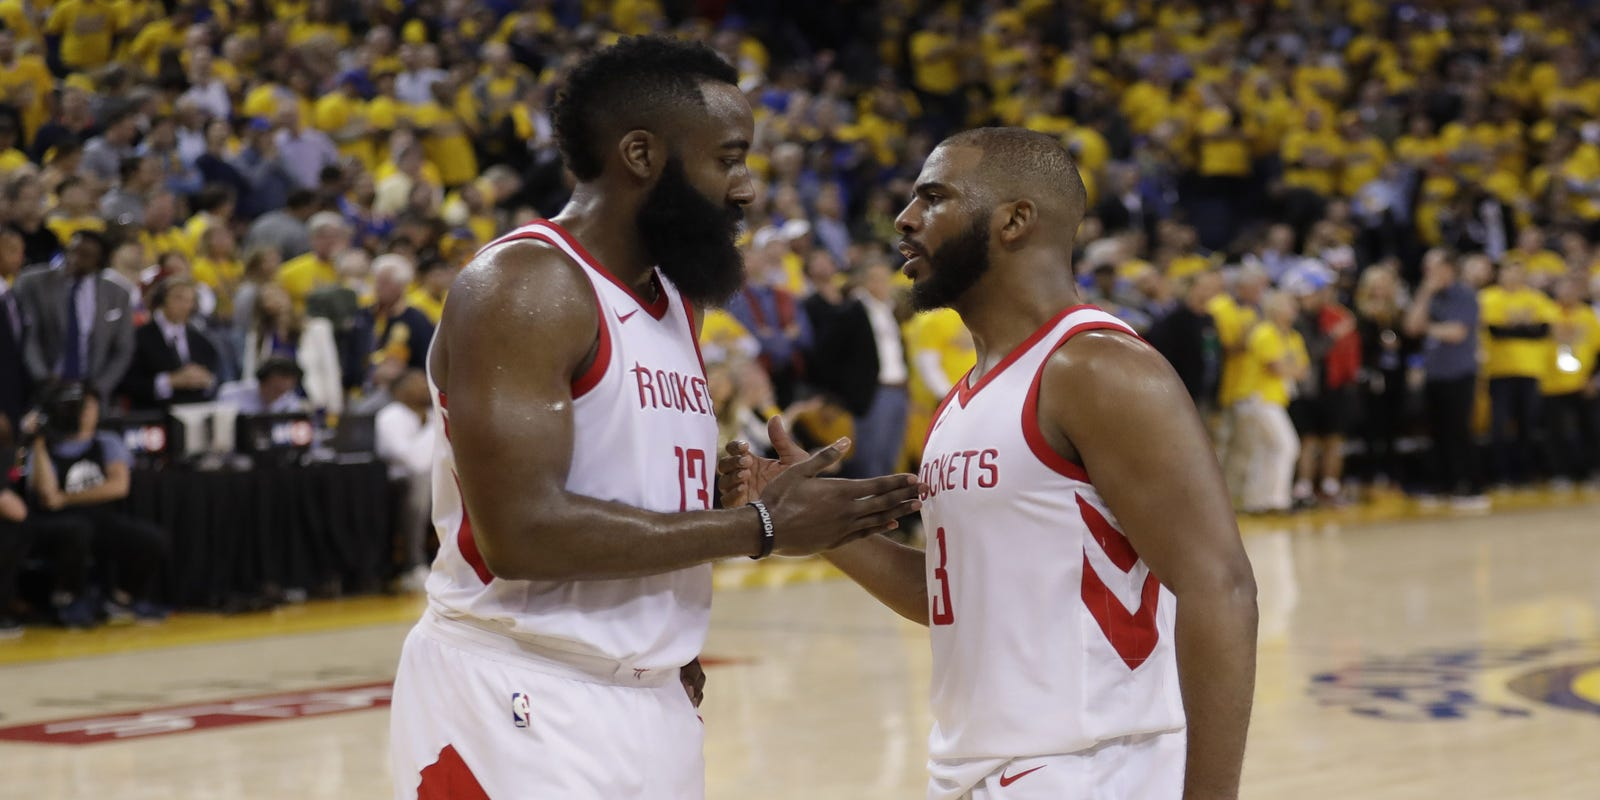 57d6baeeb15 James Harden says he hung out with injured Chris Paul until 2 30 a.m.